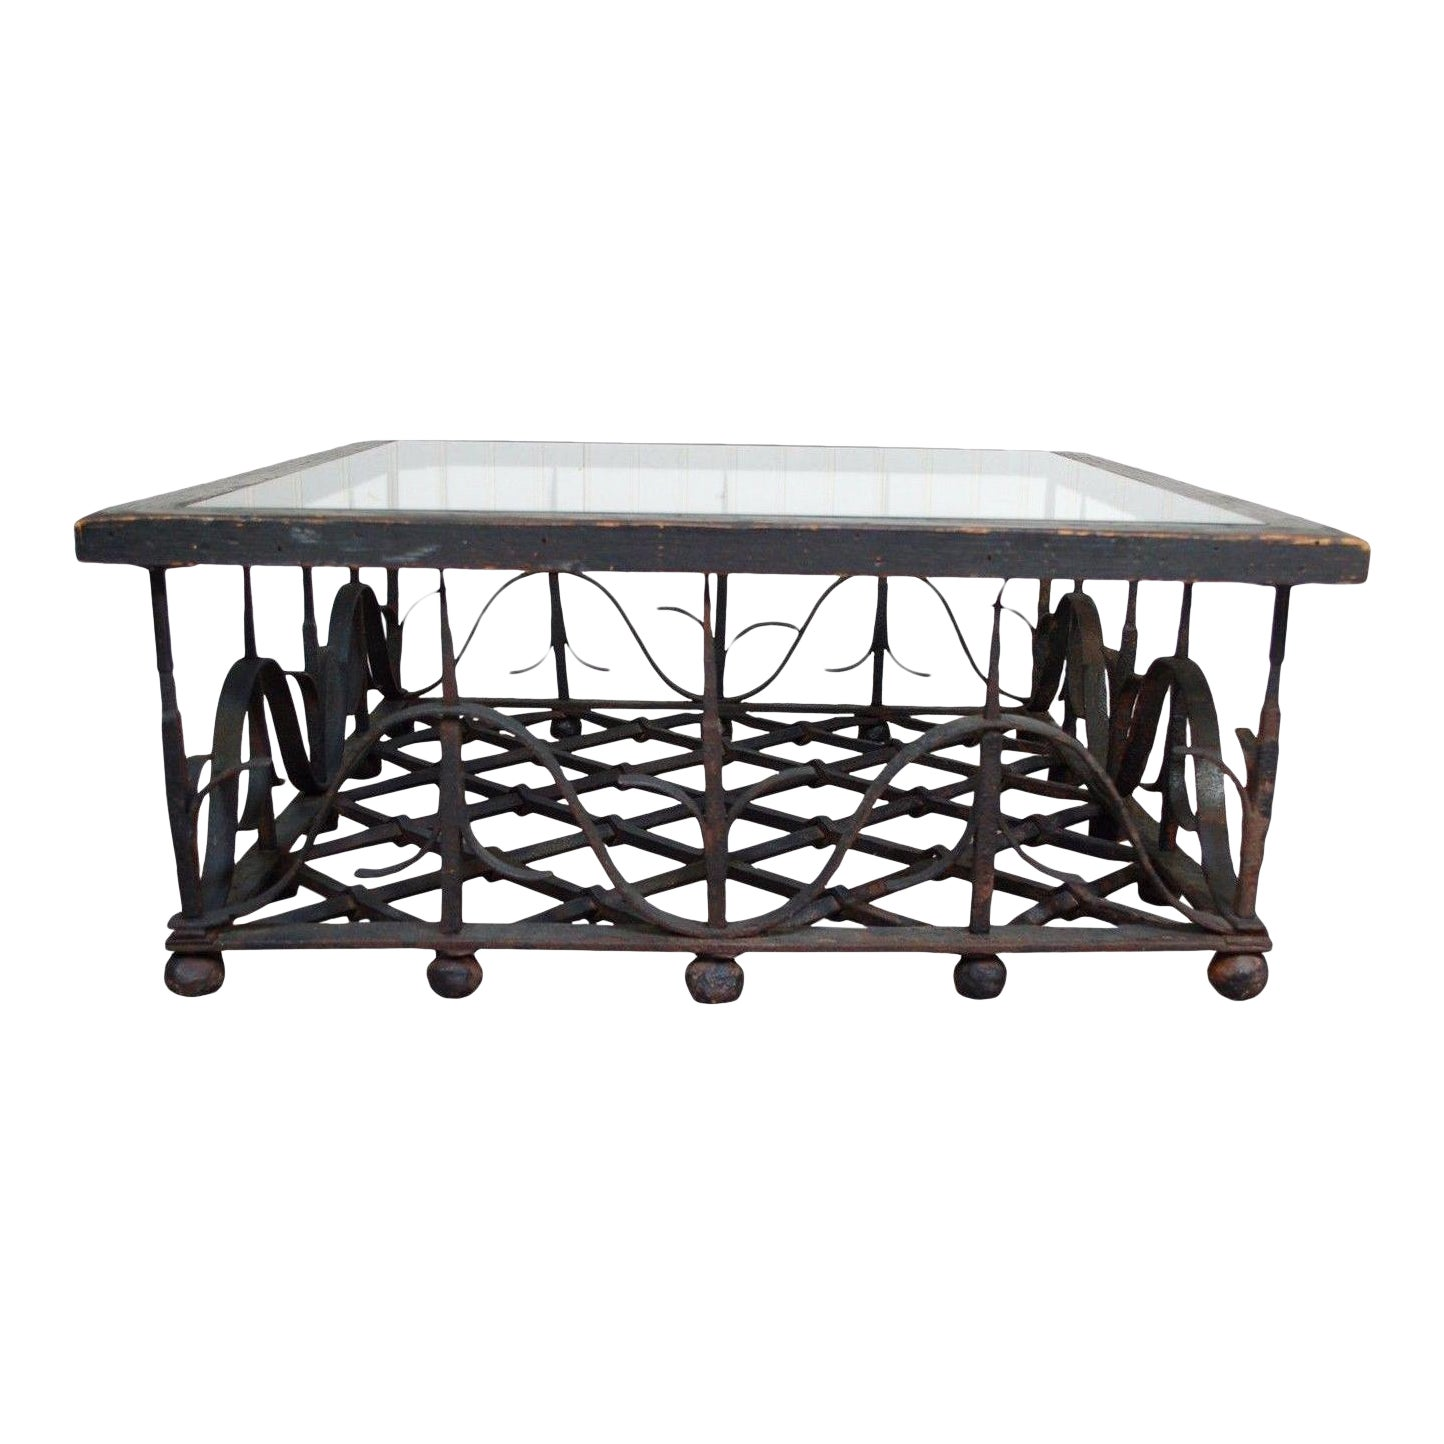 Unique Antique Wrought Iron Mission Arts Crafts Coffee Table